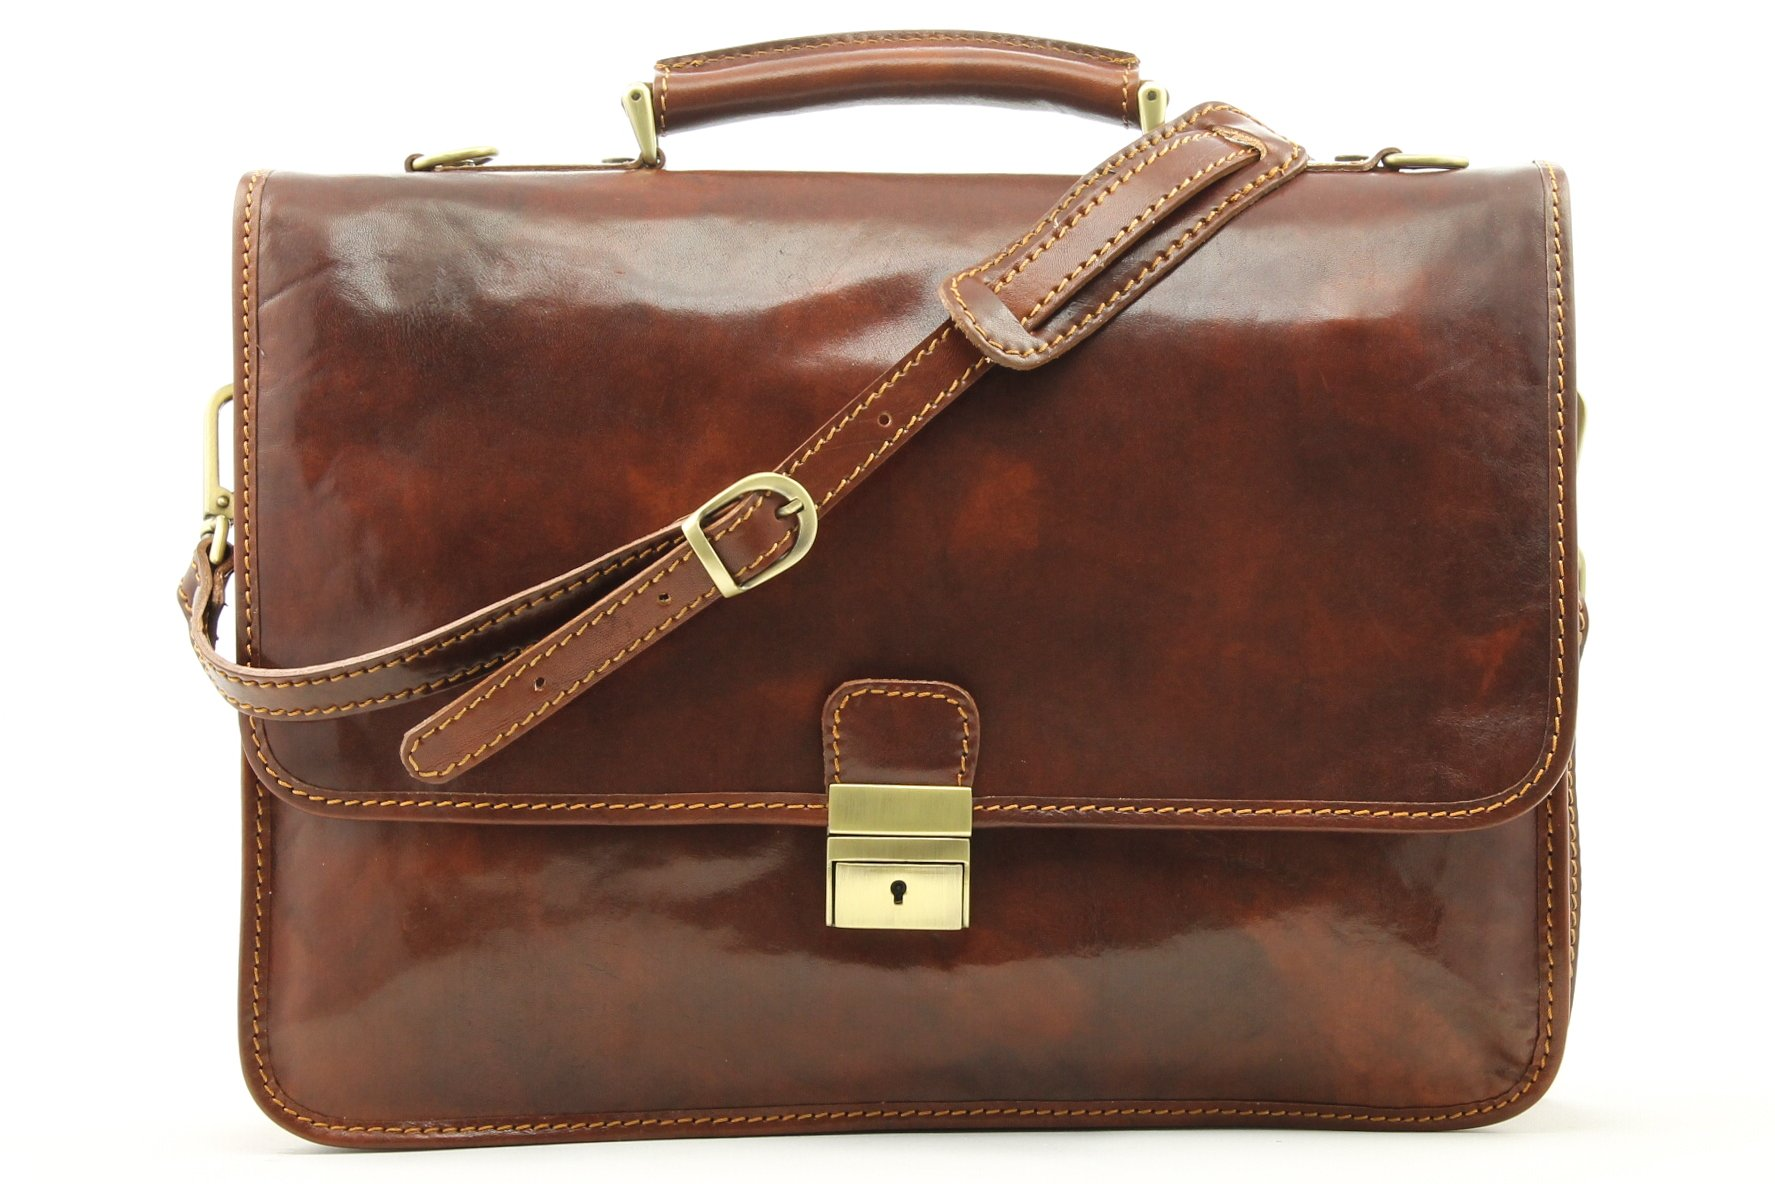 Luggage Depot USA, LLC Men's Alberto Bellucci Italian Leather Double Gusset Laptop Messenger Bag, Brown, One Size